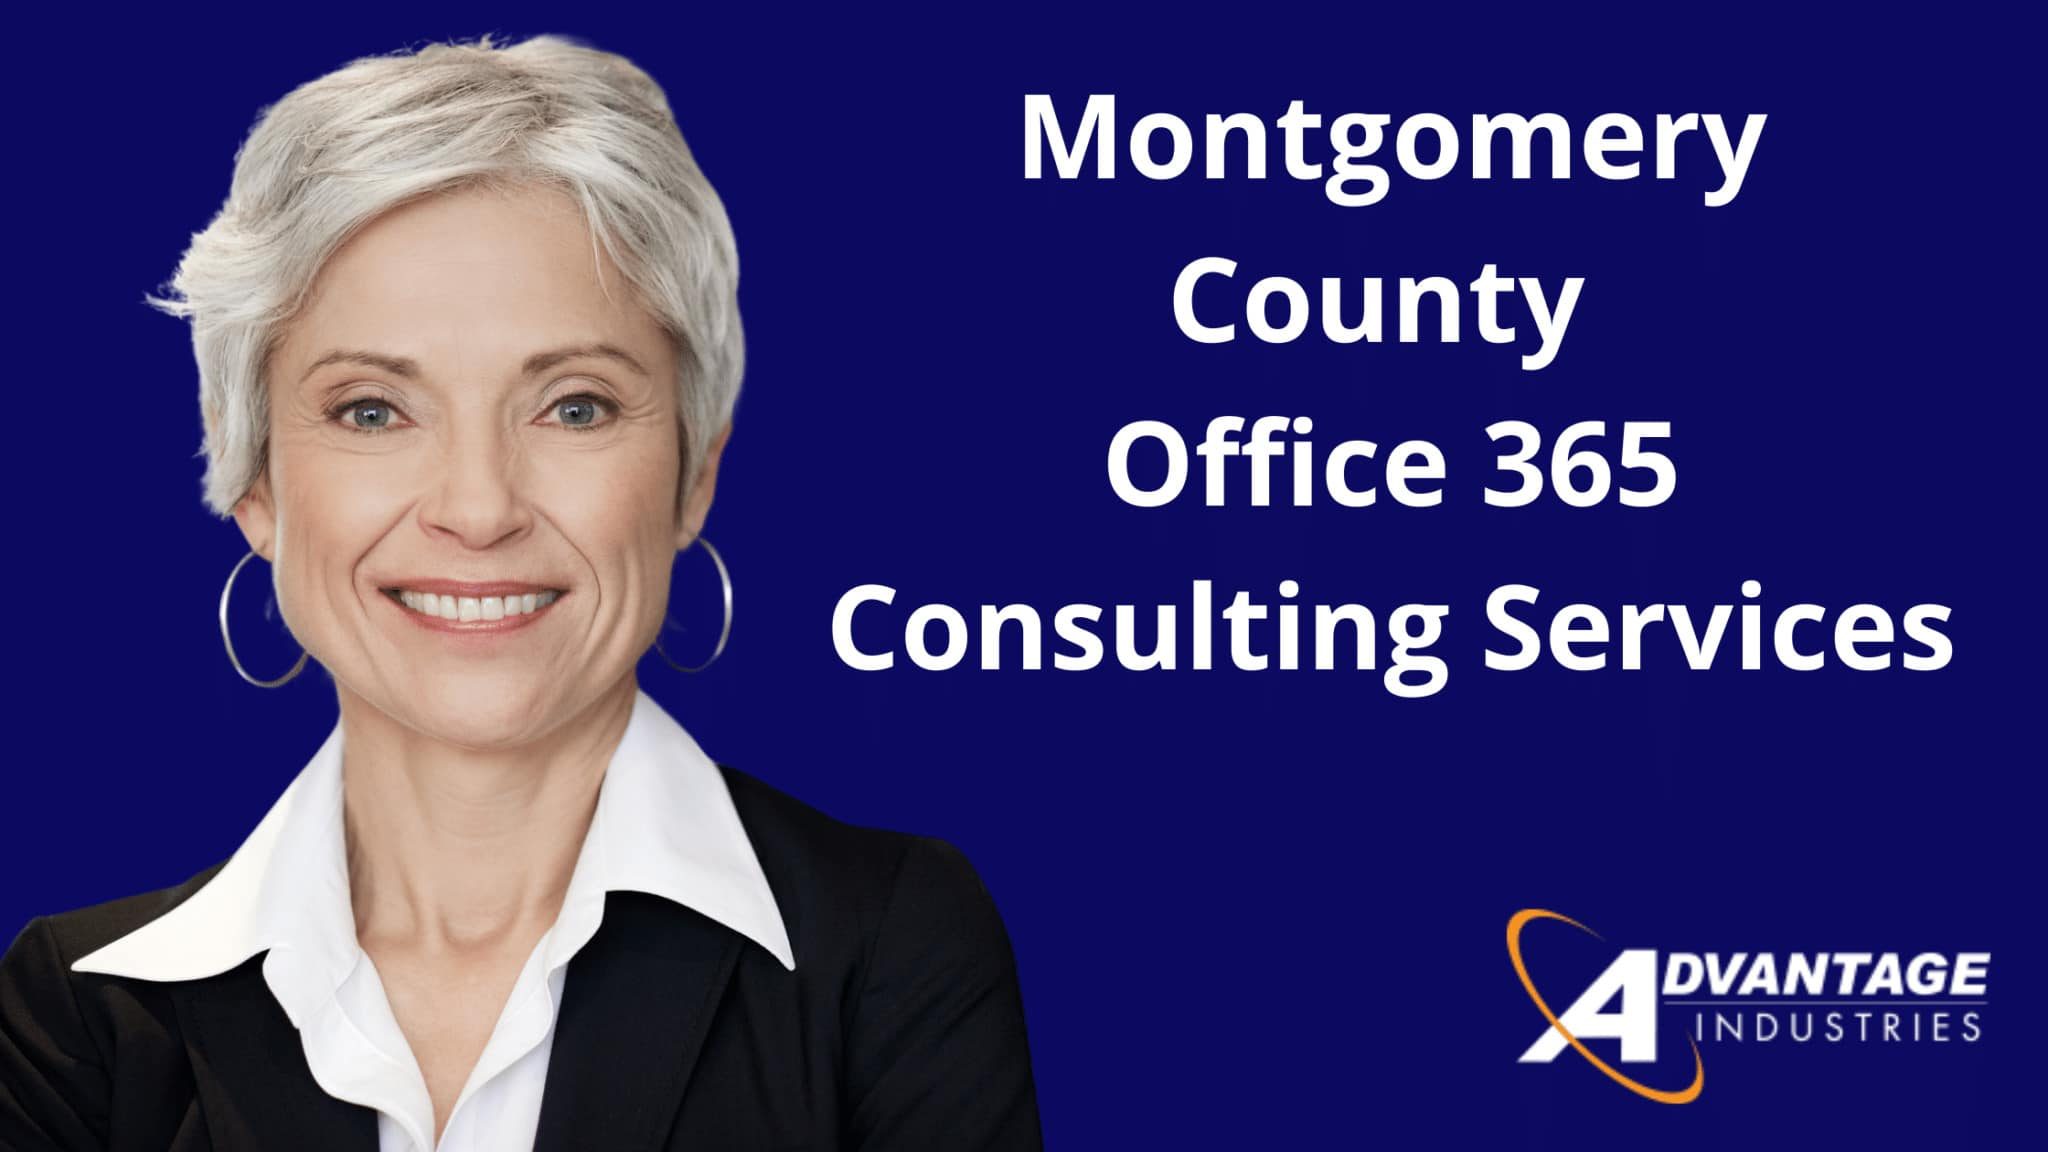 Montgomery County Office 365 Consulting Services